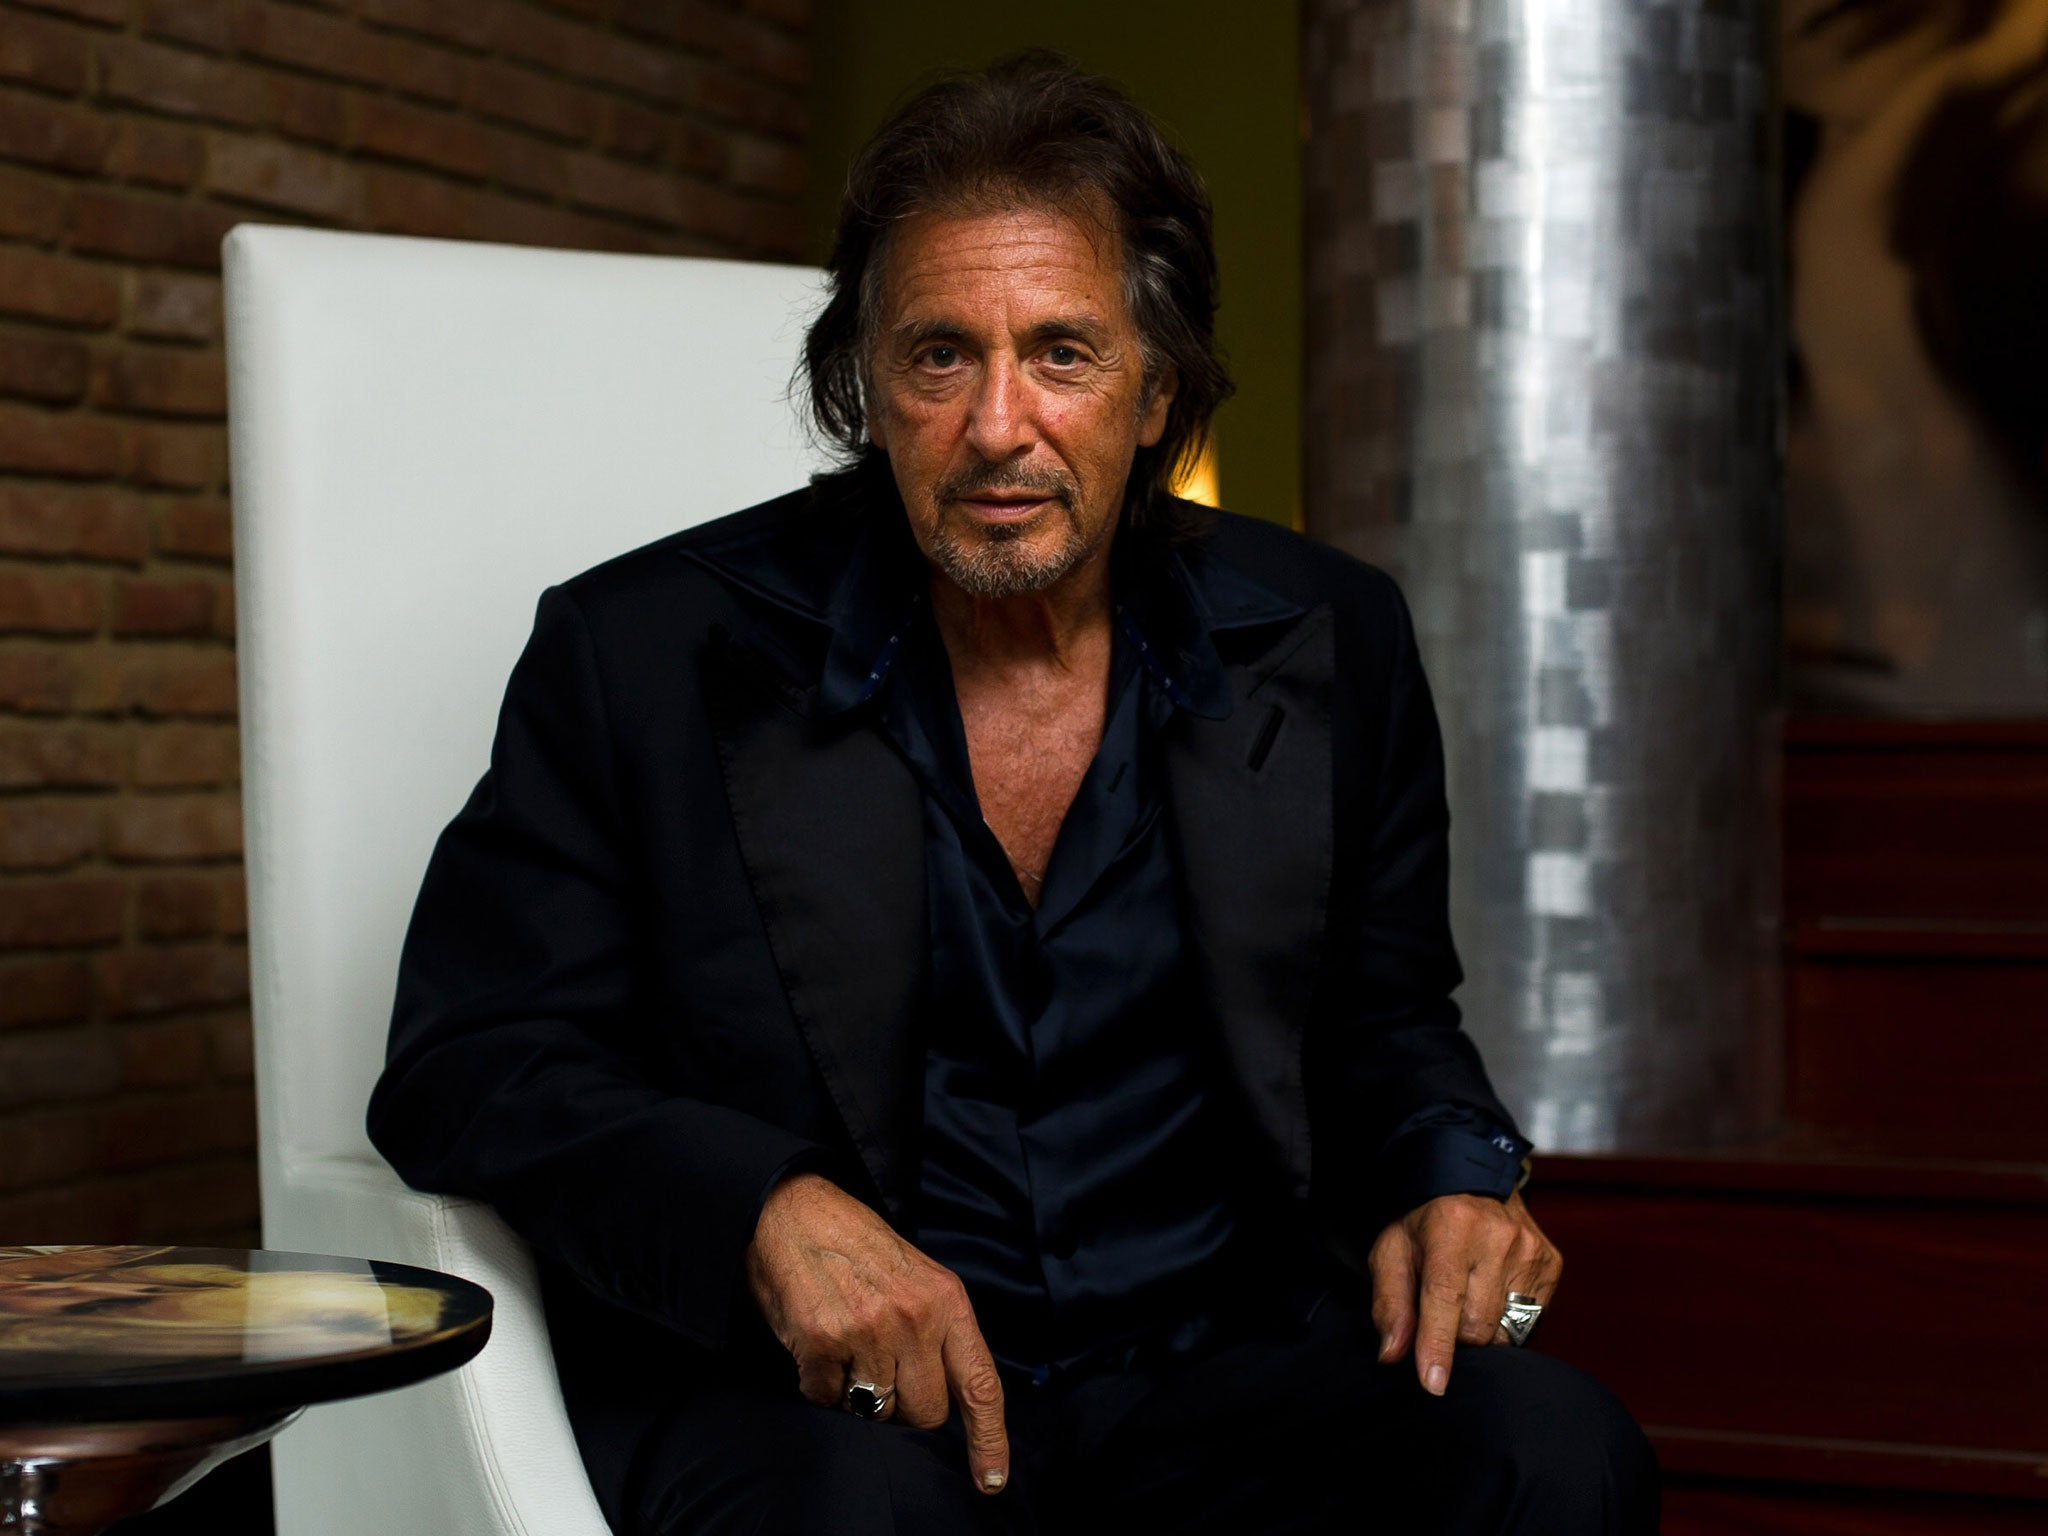 My Ford Benefits >> Al Pacino: 5 films he famously turned down from Han Solo in Star Wars to Taxi Driver | The ...